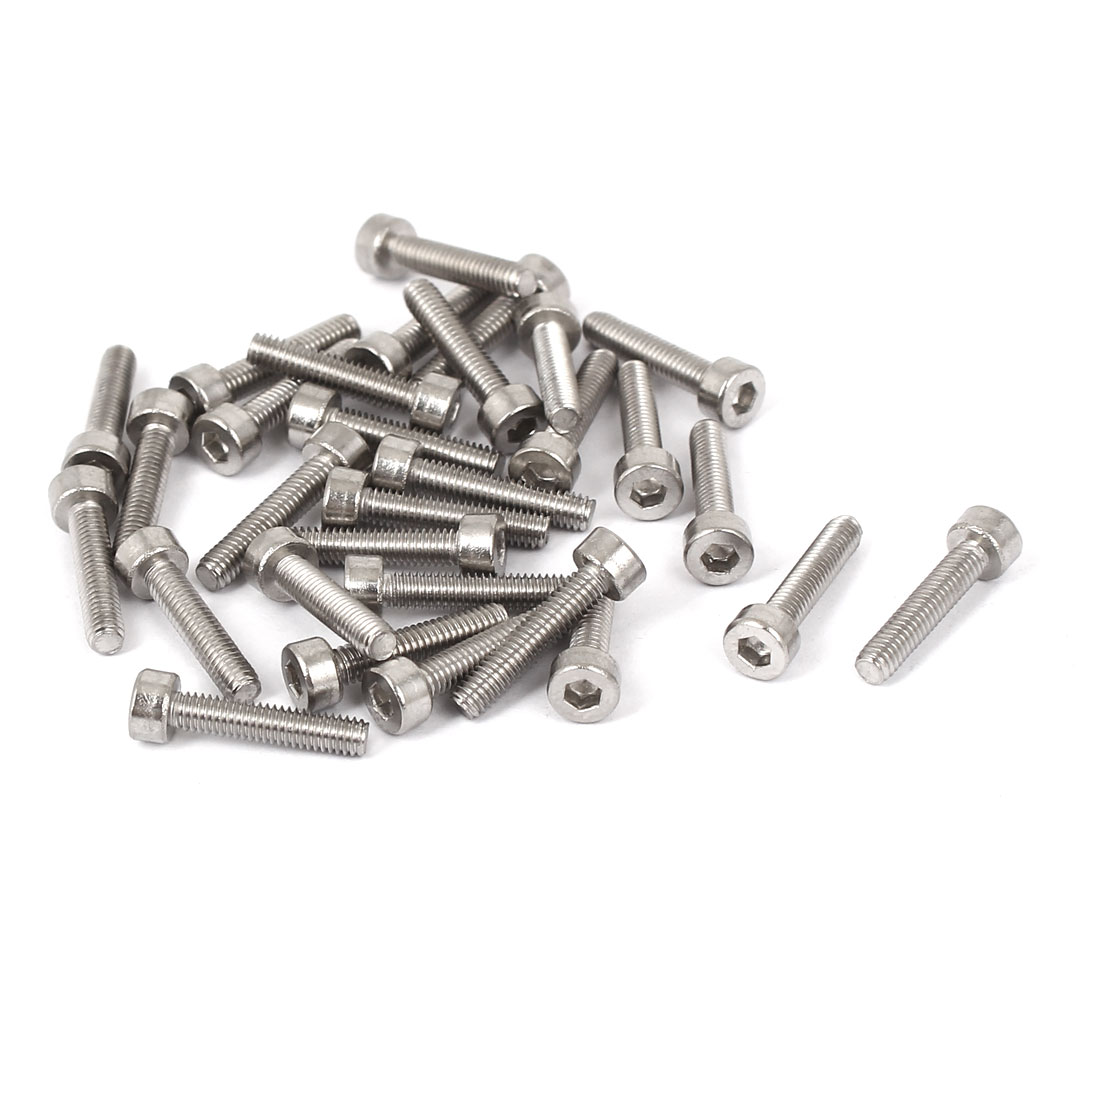 30 Pcs M2.5x12mm 316 Stainless Steel Metric Hex Socket Head Cap Bolts DIN912